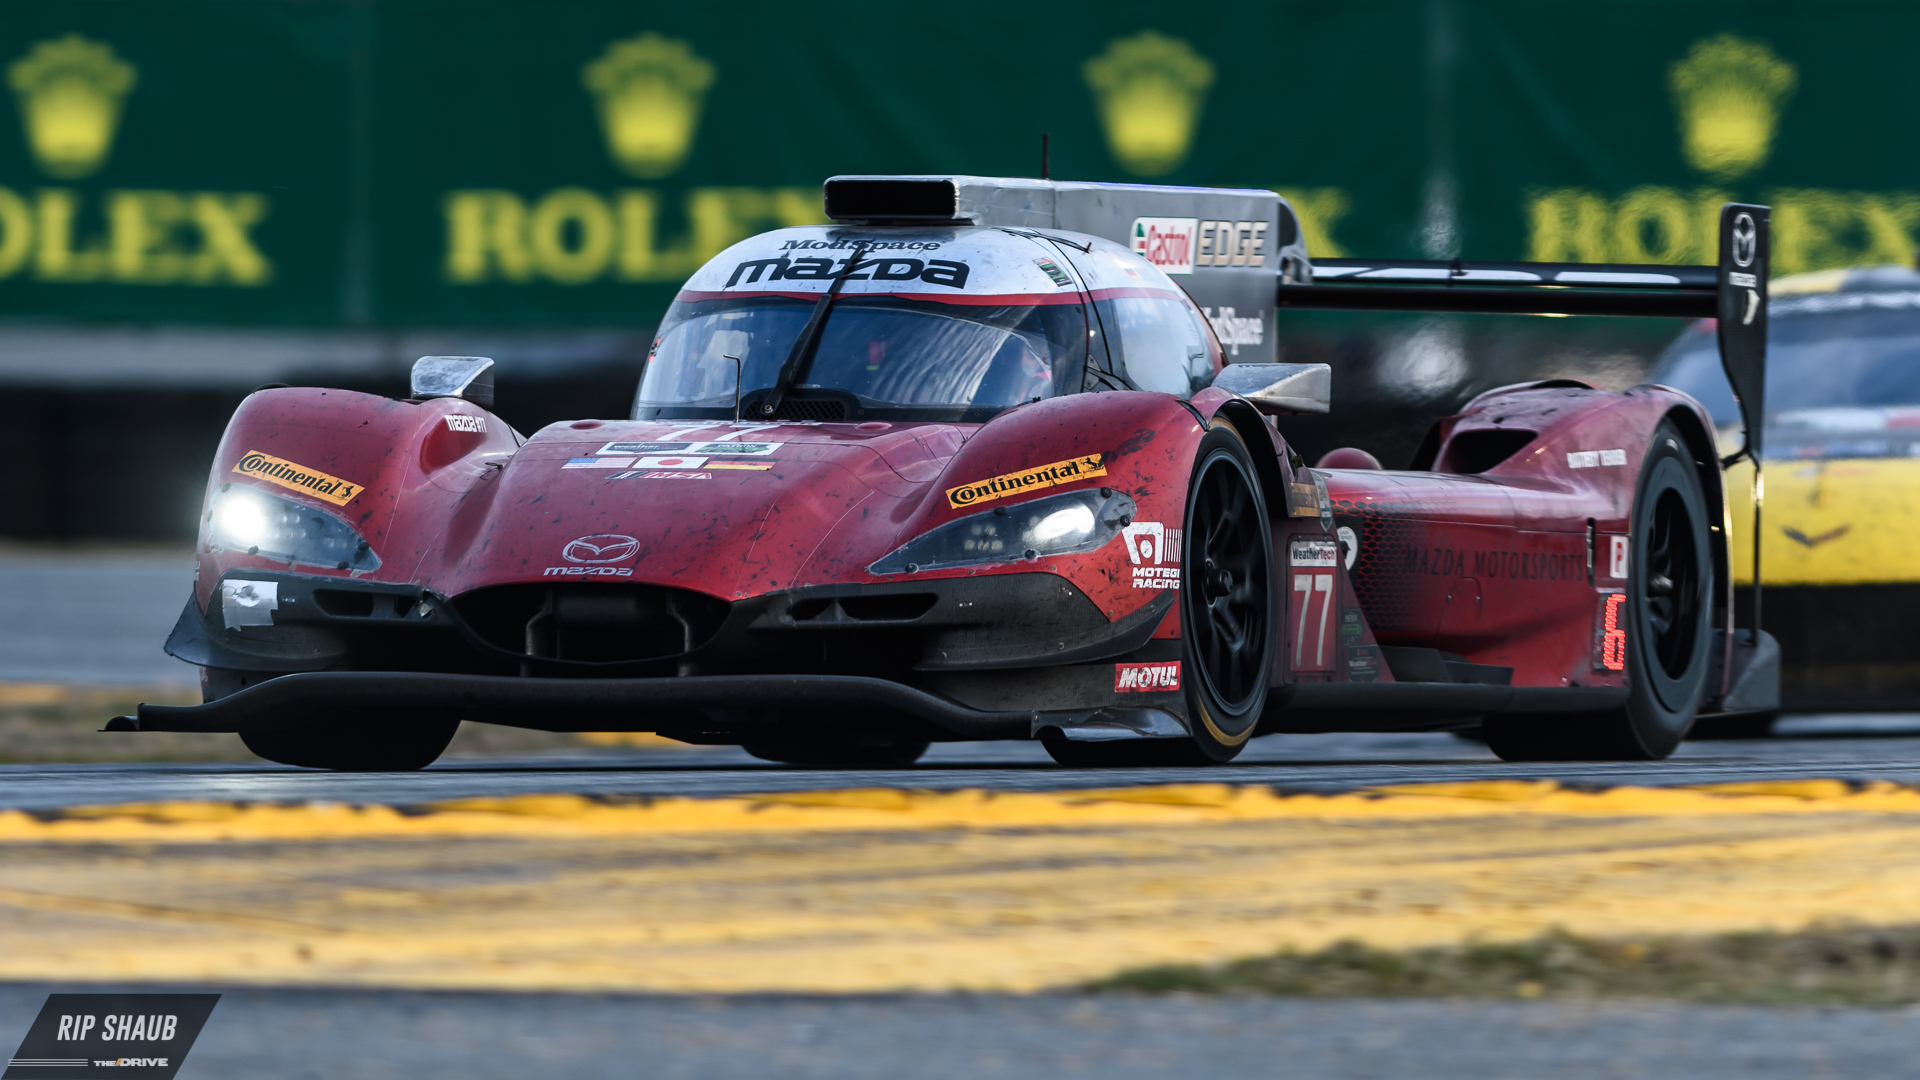 Mazda will continue its IMSA efforts with Team Joest as well as the Global MX-5 Cup series which involves those in the Road to 24 program.